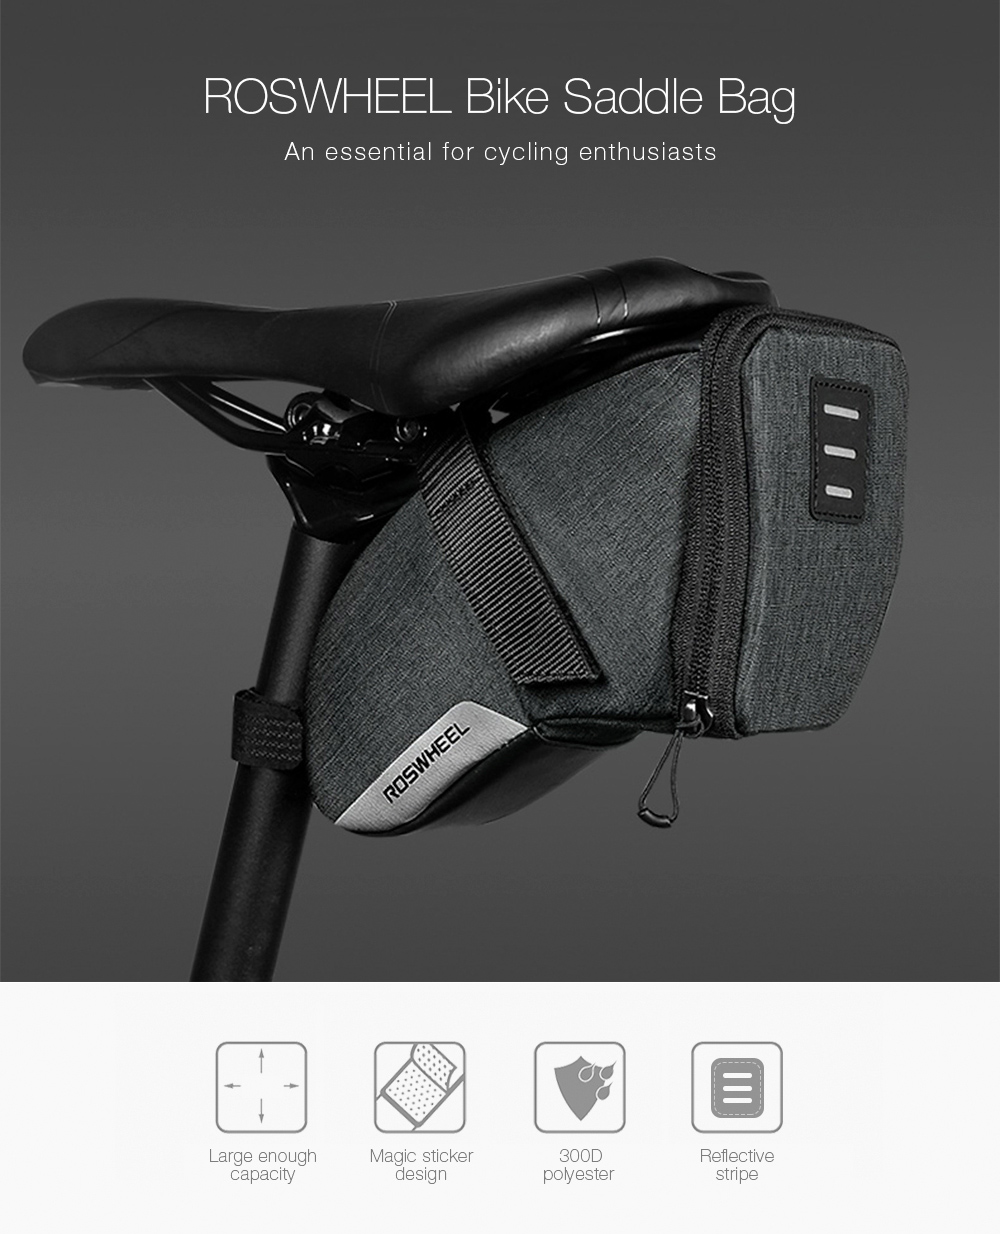 21ebfc3b4e7 ROSWHEEL Mtb Saddle Bag Waterproof Rainproof Seat Pack Cycling Bicycle  Saddle Bag Shockproof Rear Seatpost Bags Tail Pouch